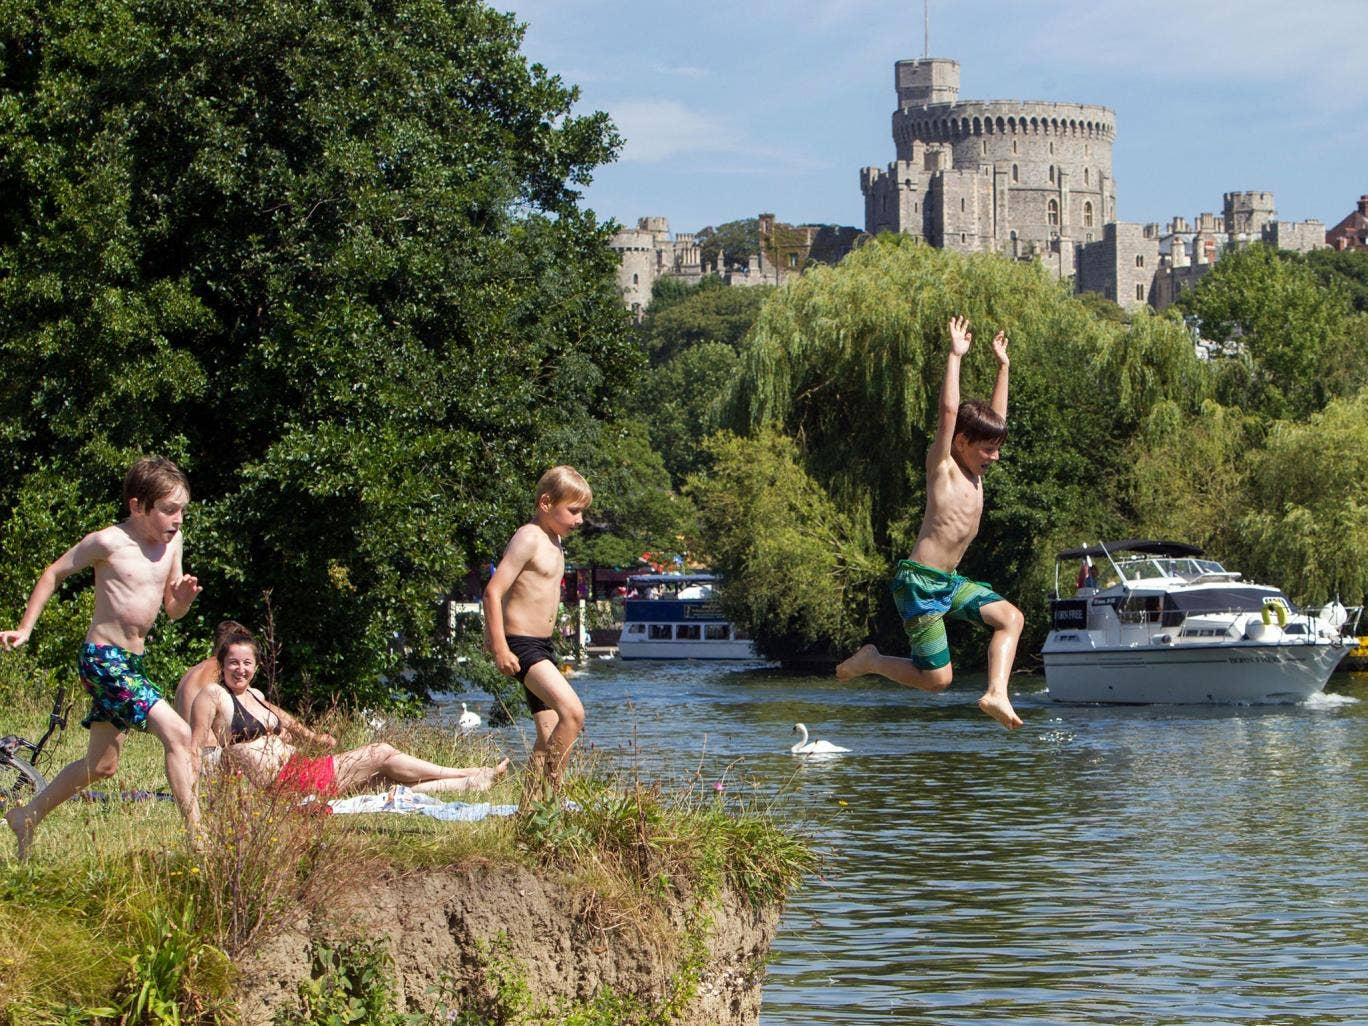 Elliott Duko (R) with Charles Keen (L) and Harry O'Shaughnesy (C) cool off by jumping into river Thames in Windsor